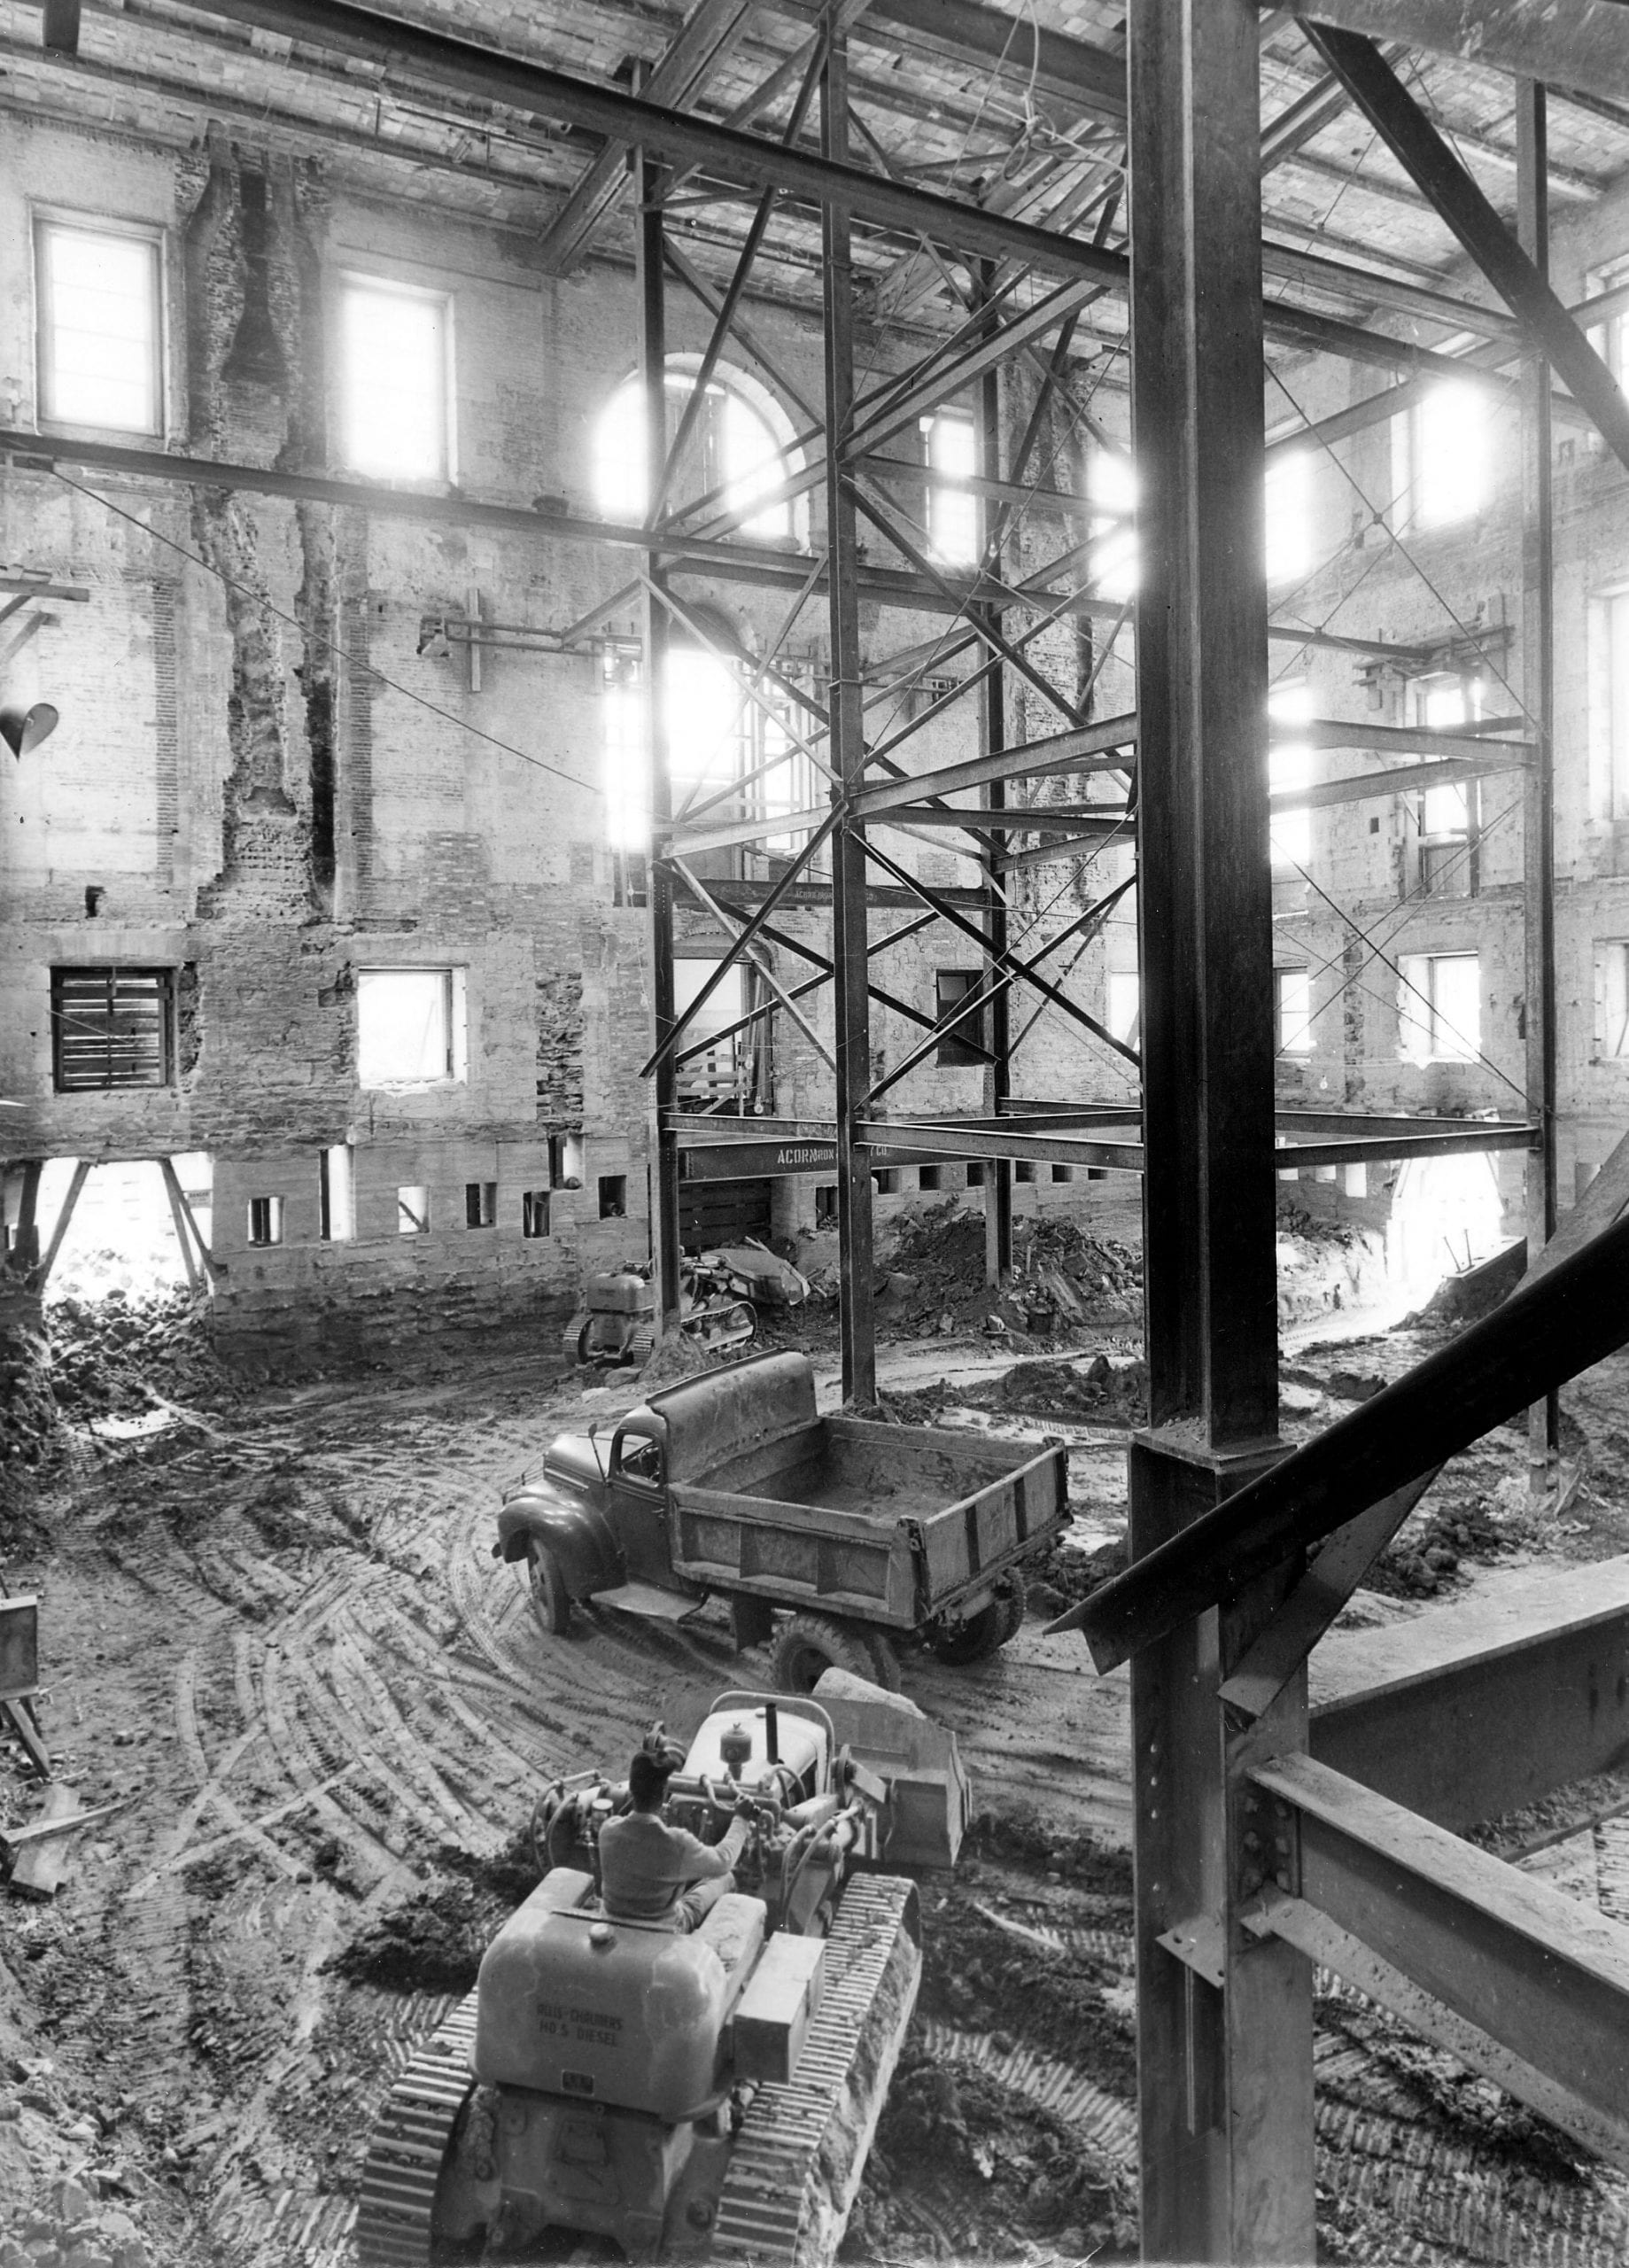 interior shell of the White House - May 15th, 1950